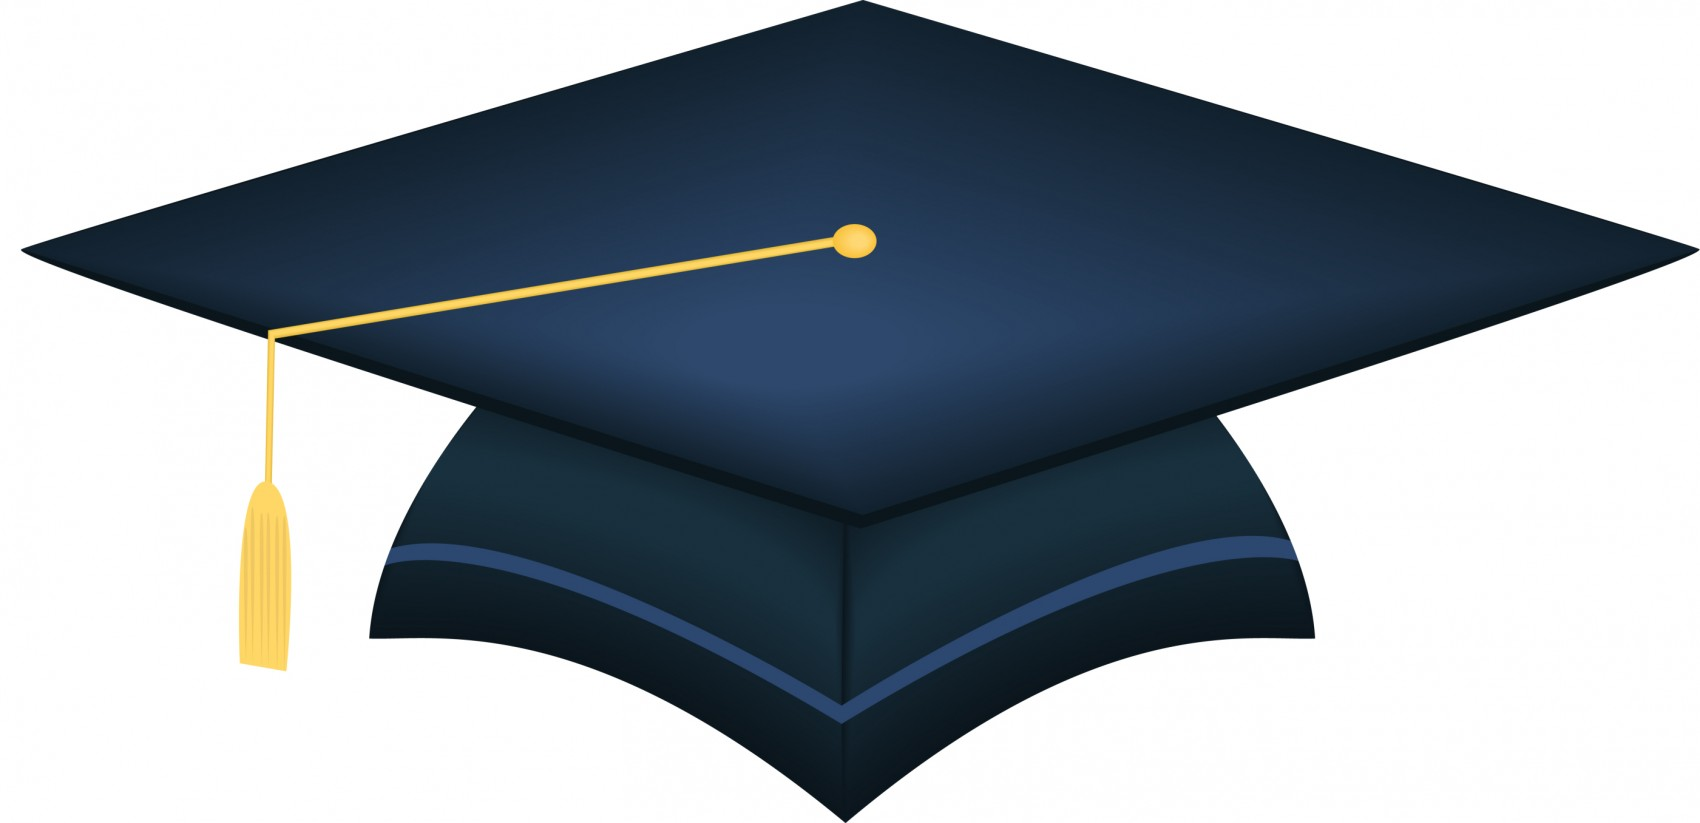 1700x823 Graduation Cap Graduation Hat Free Clipart Education 4